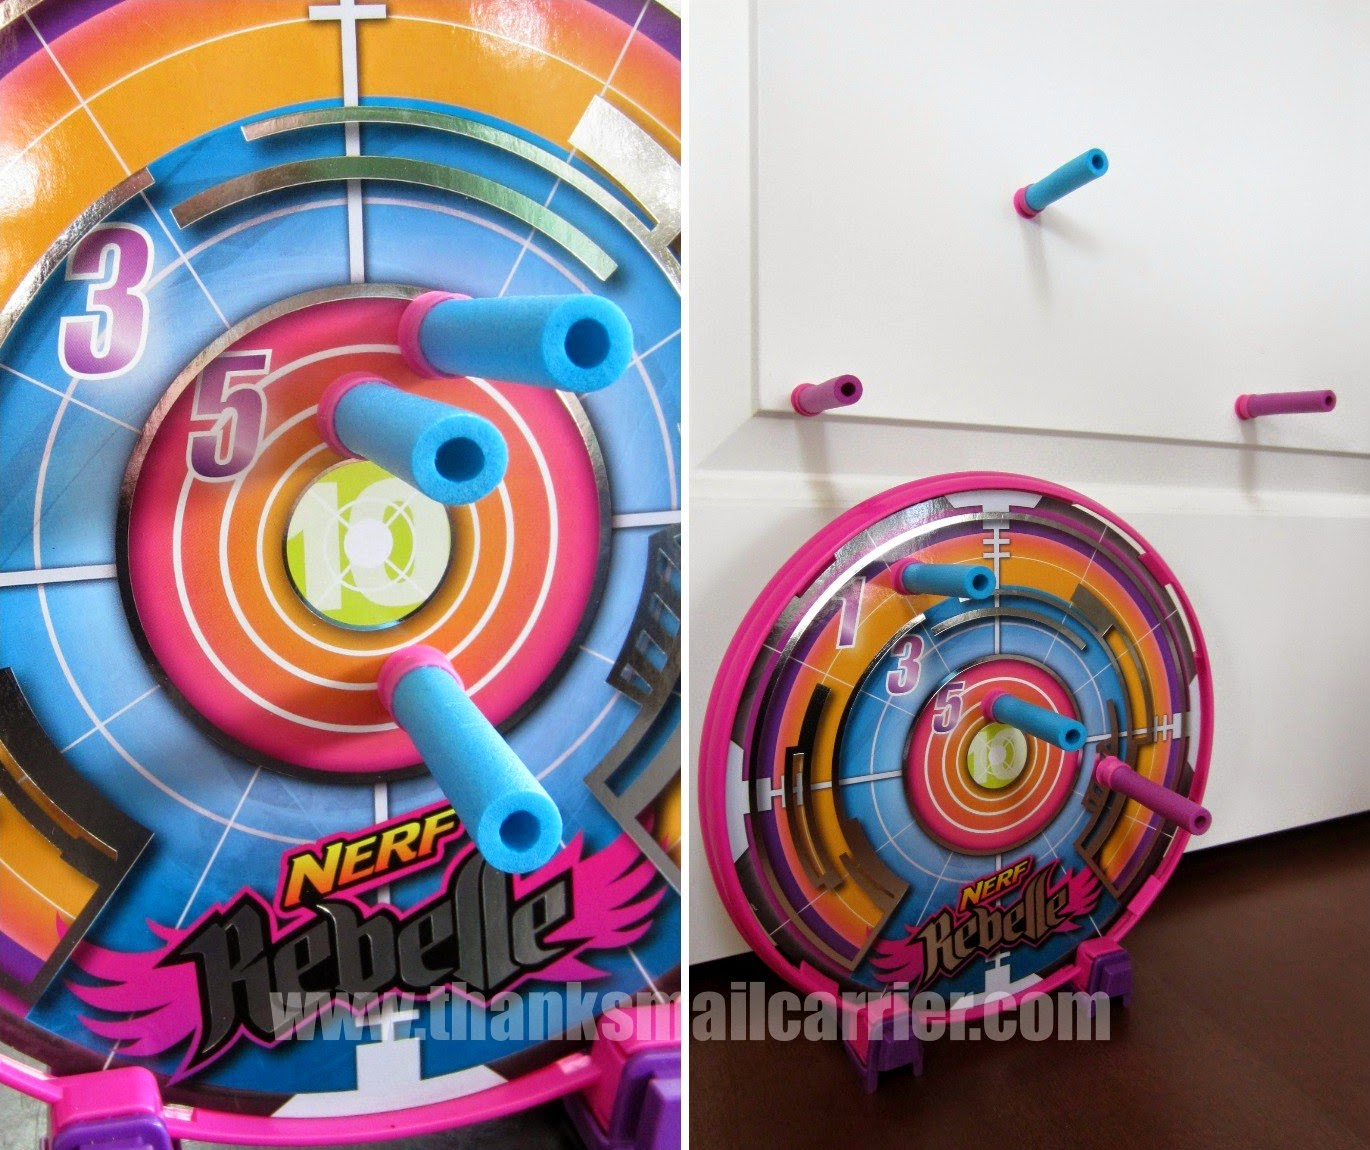 Nerf Rebelle bow and arrow